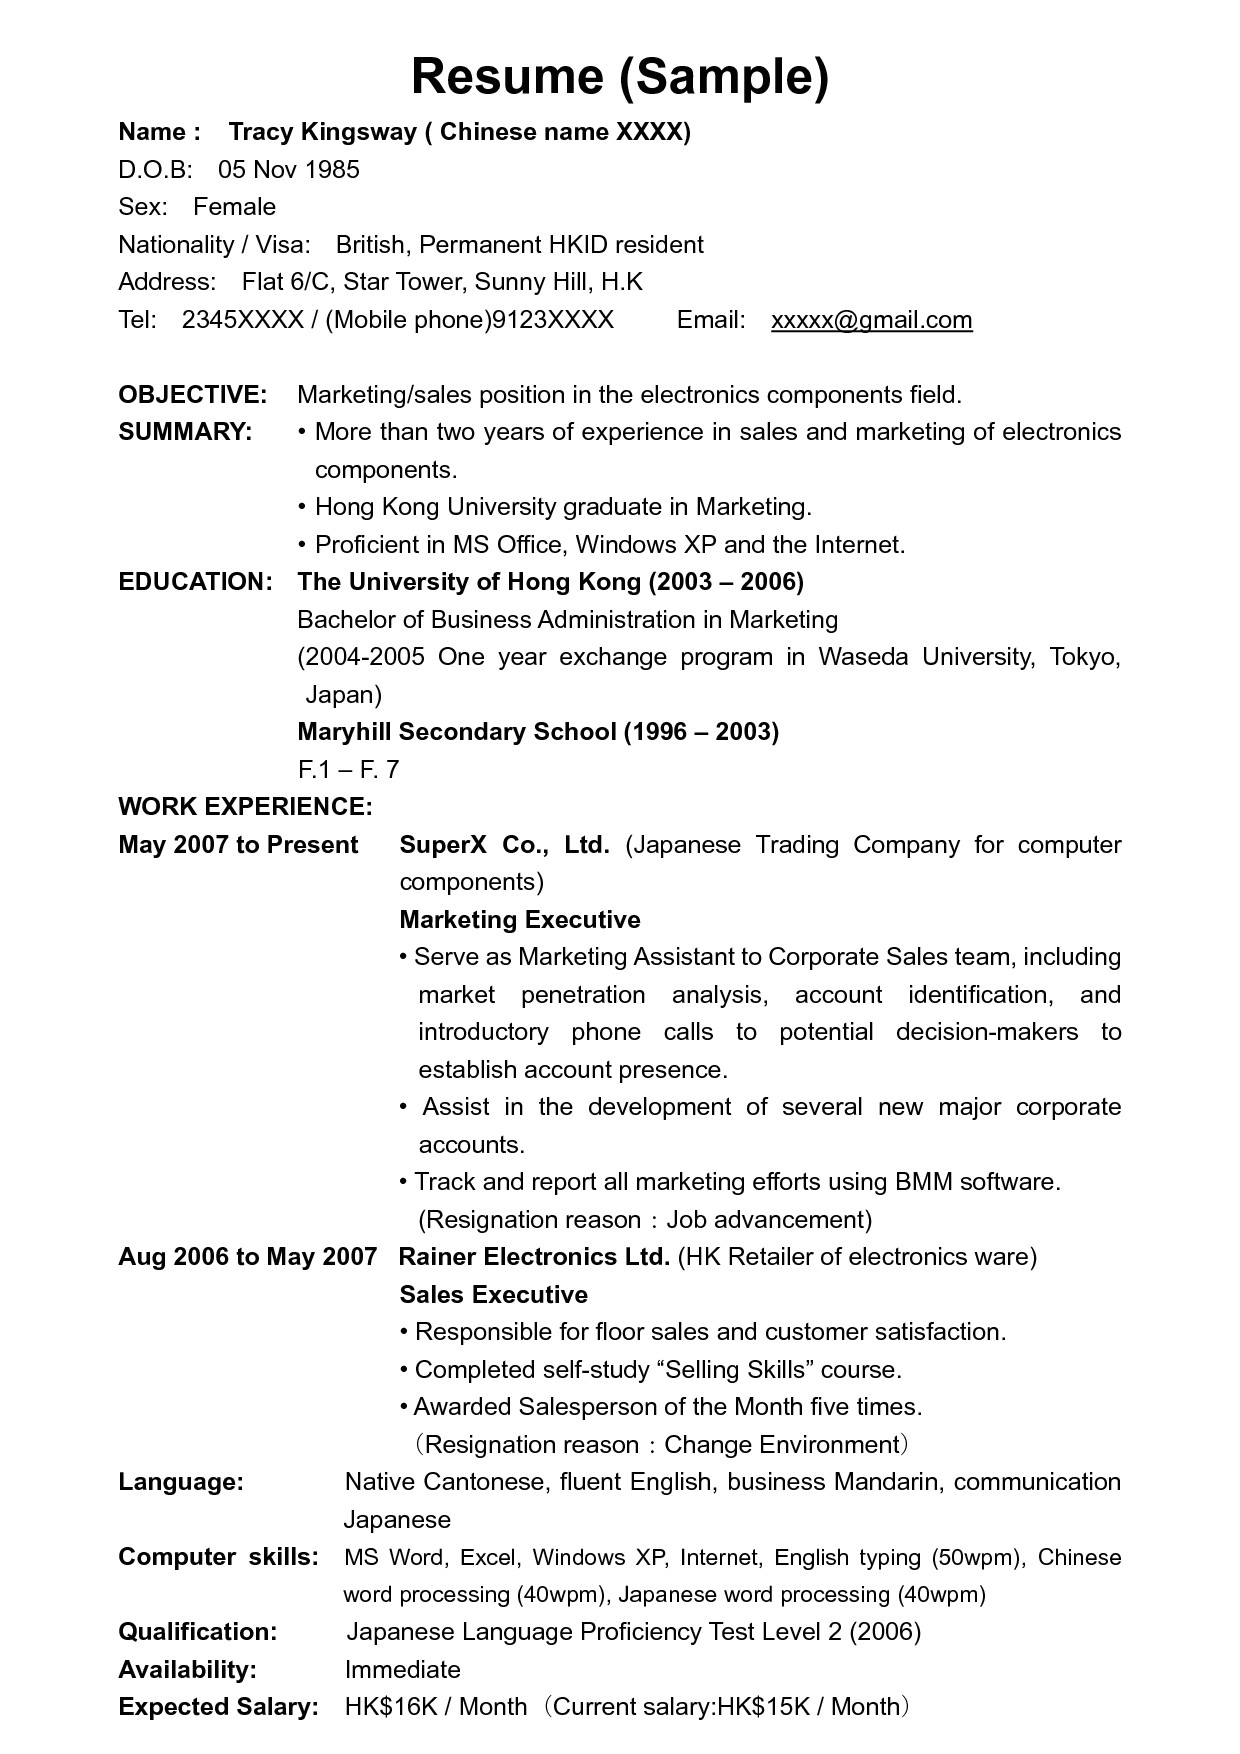 Resume Expected Salary Sample Expected Salary In Resume Sample Resume Ideas